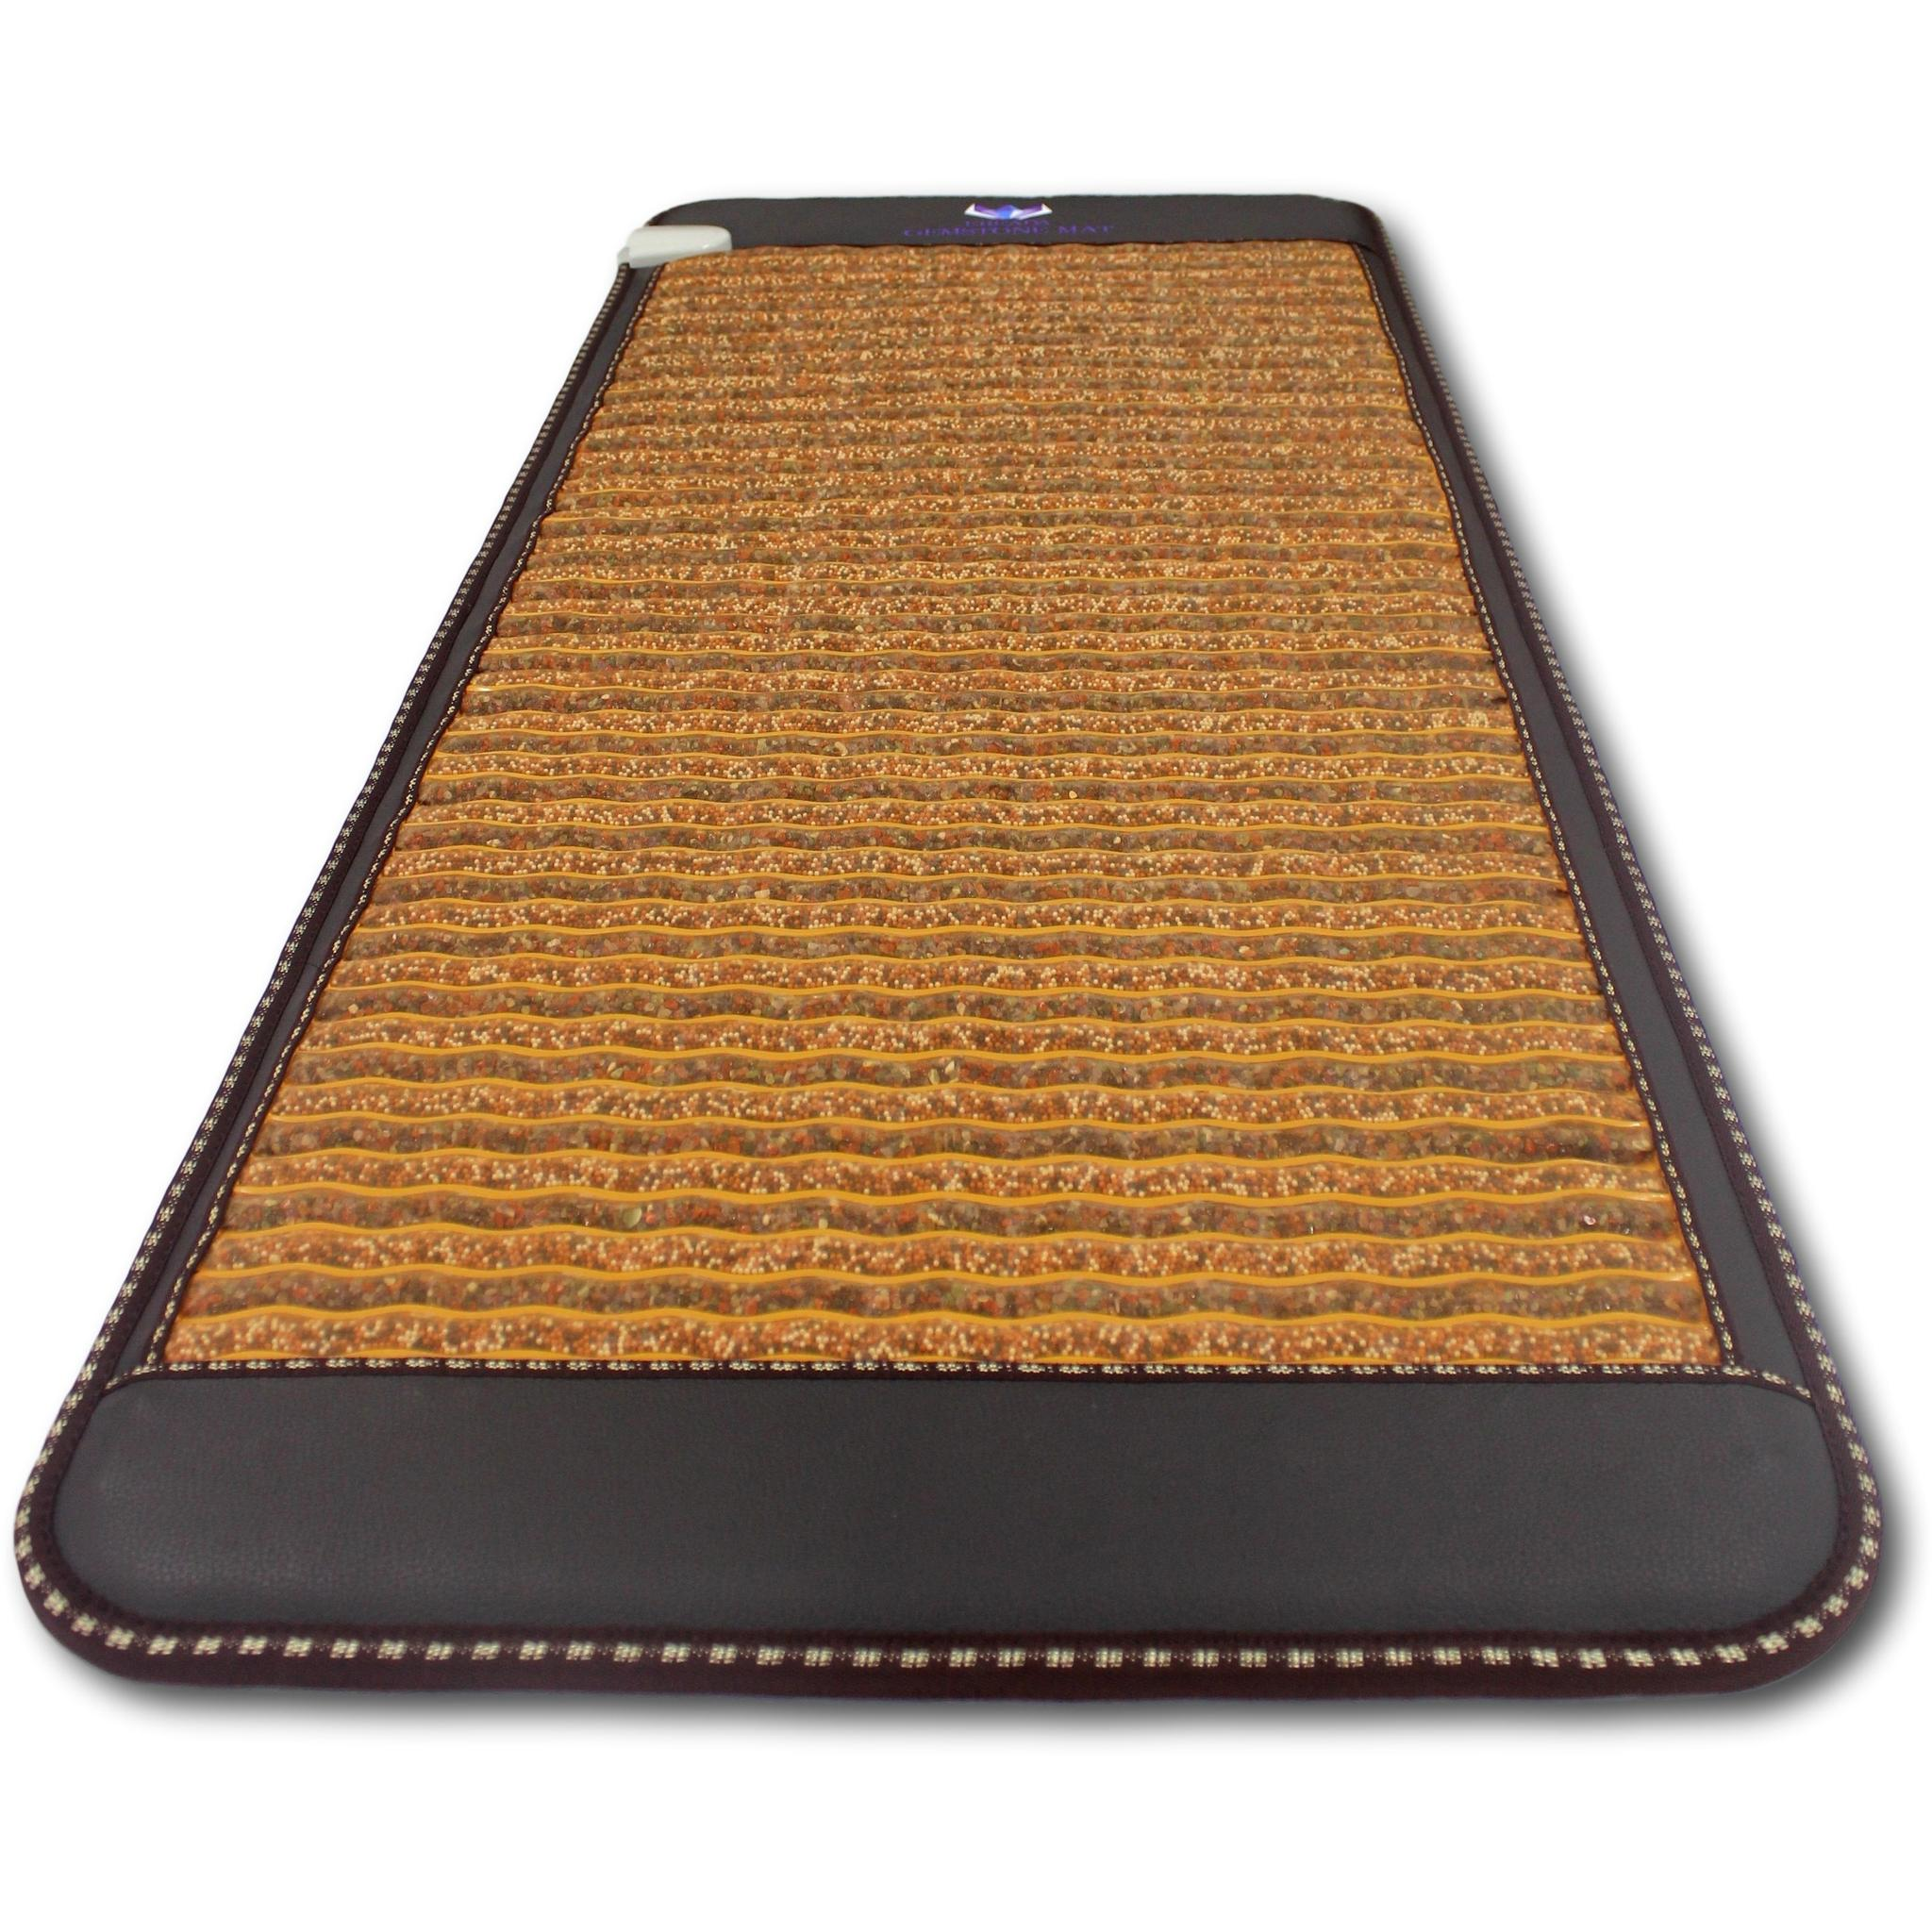 biomat massage village therapy mat and bio prairie reiki amethyst